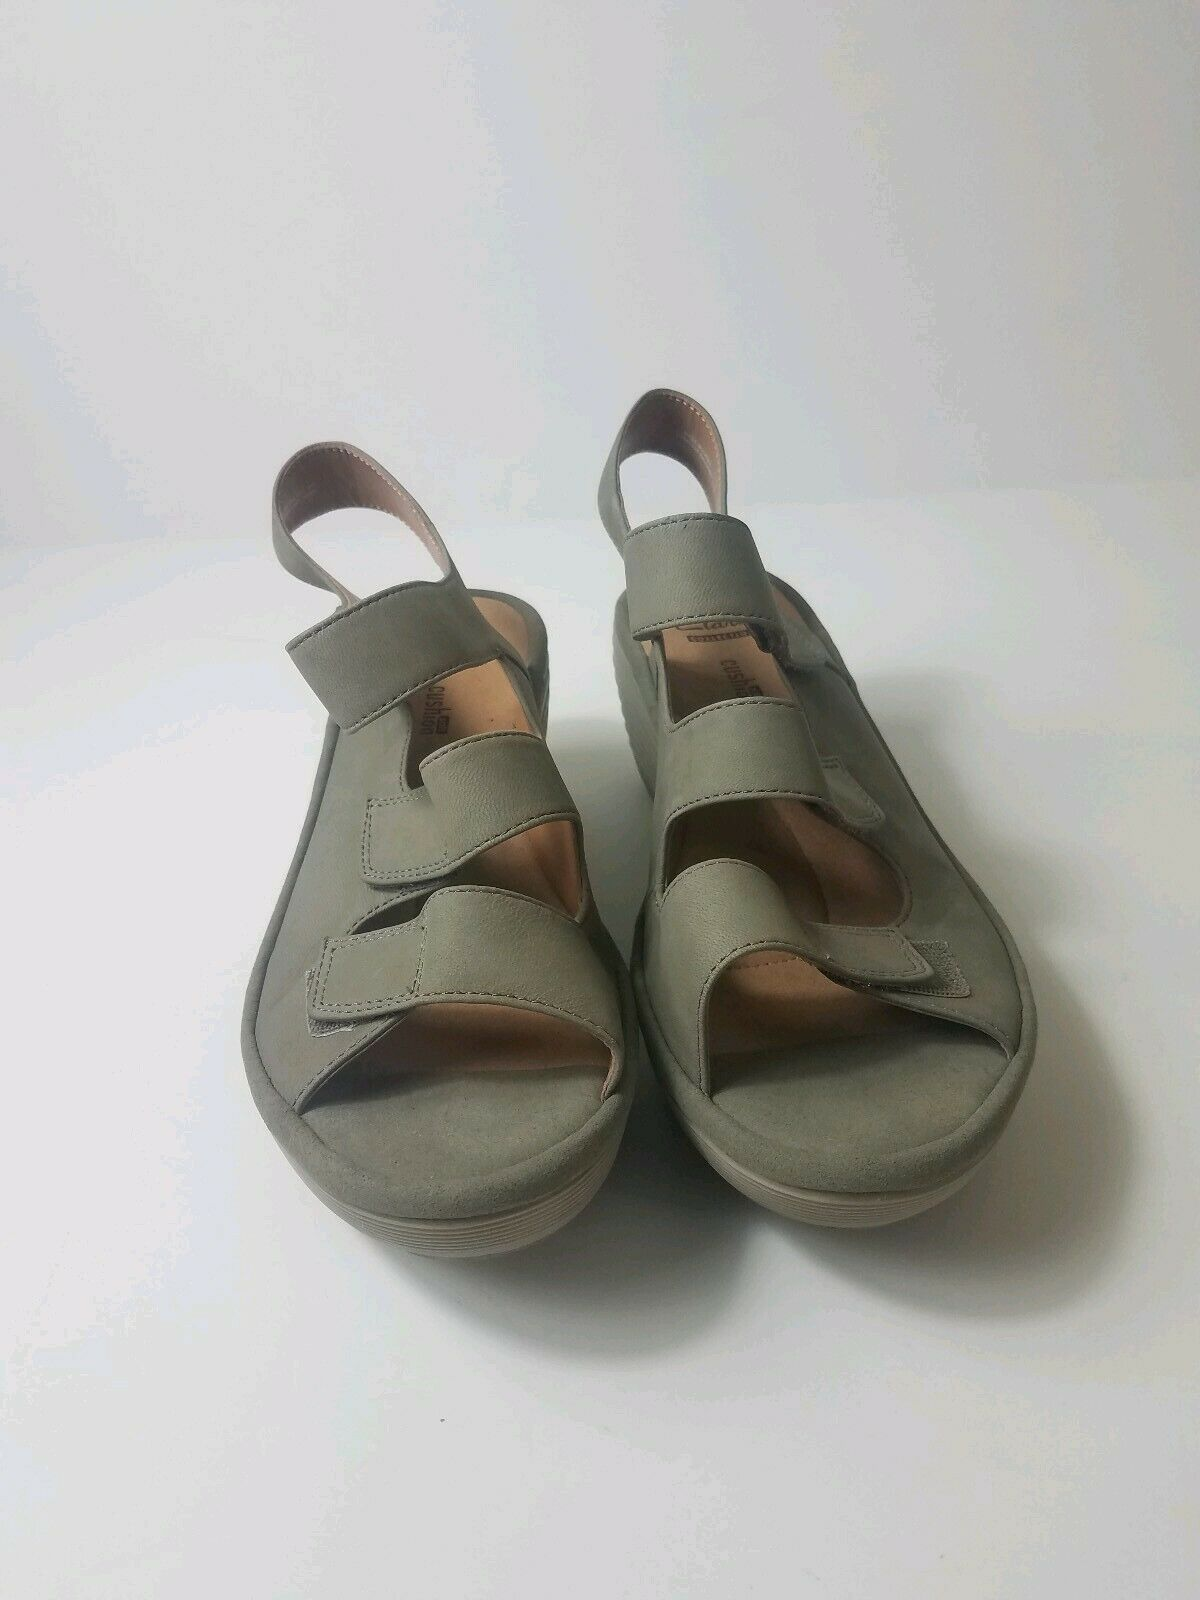 Clarks Collection Soft Cushion Beige Suede Wedge Sandals - Size 6 1 2 W